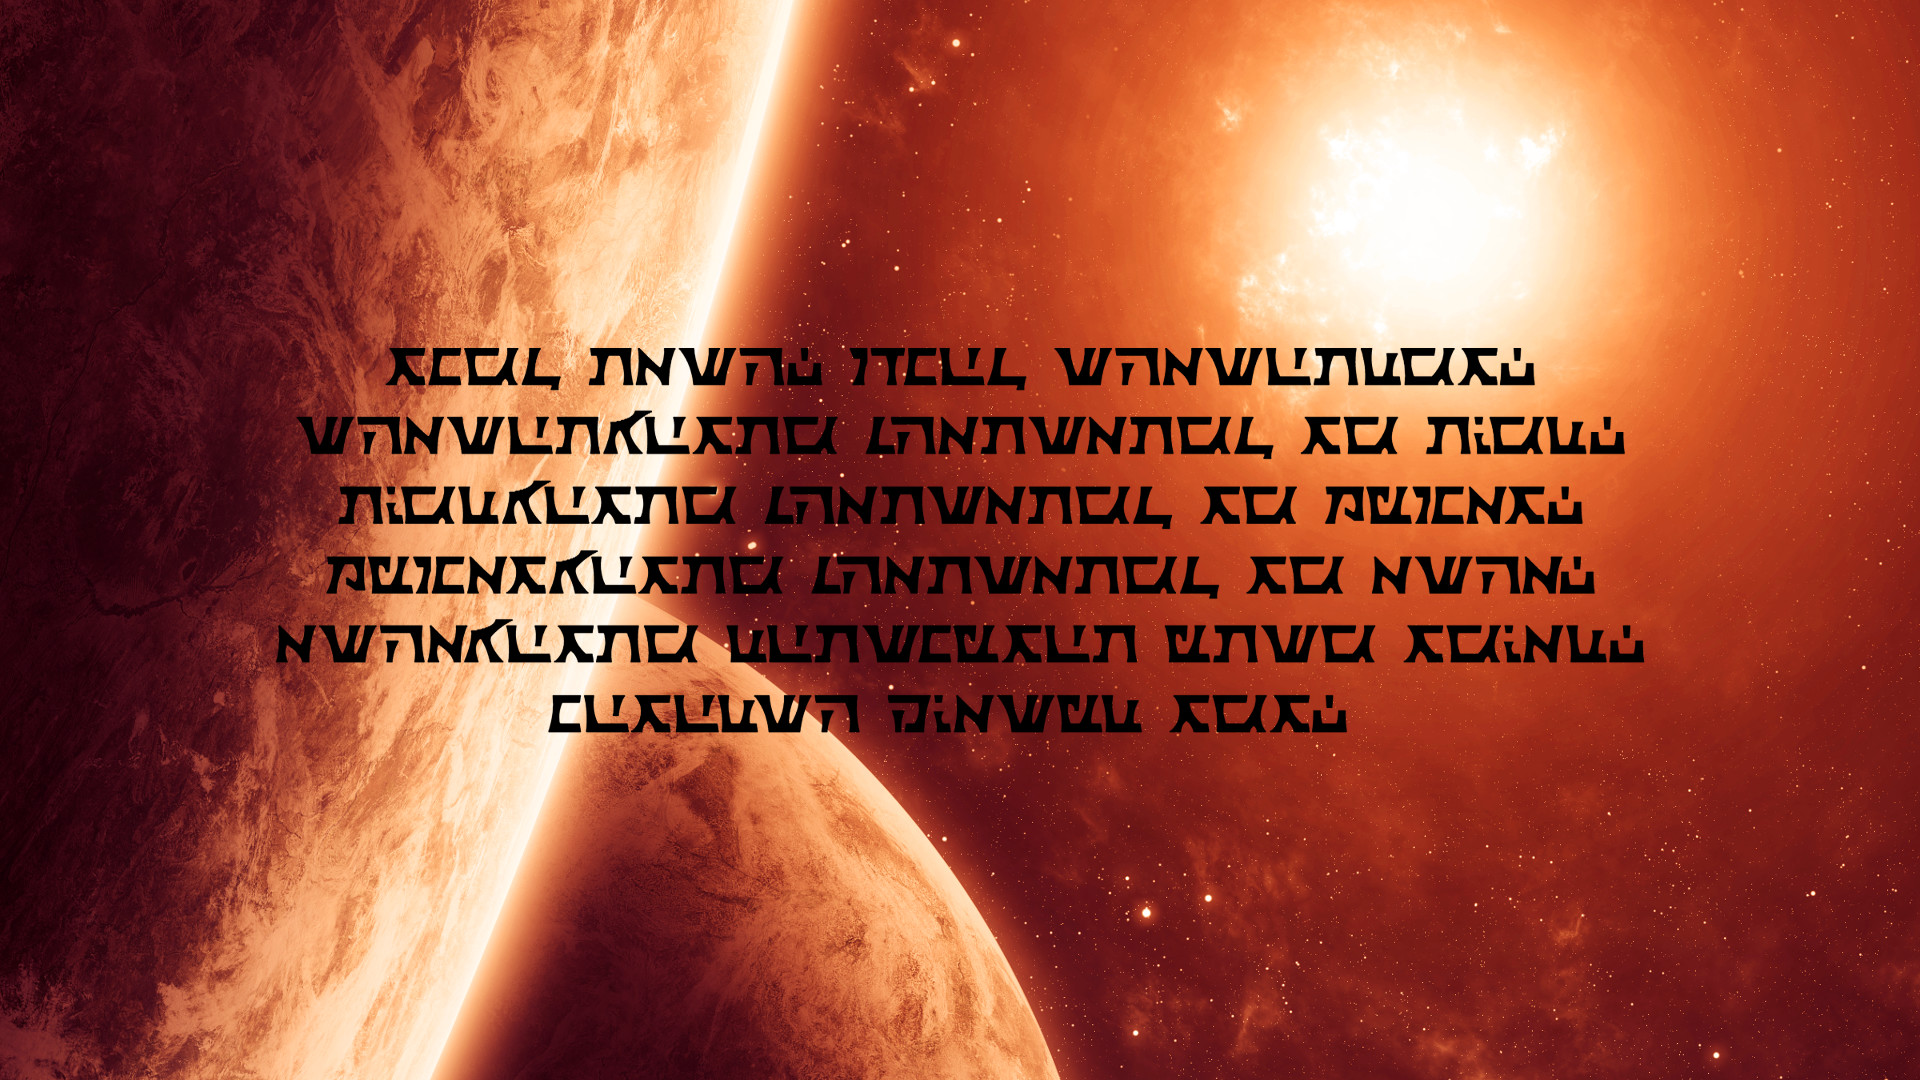 The Sith Code Qotsisajak by Hyperion127 The Sith Code Qotsisajak by  Hyperion127